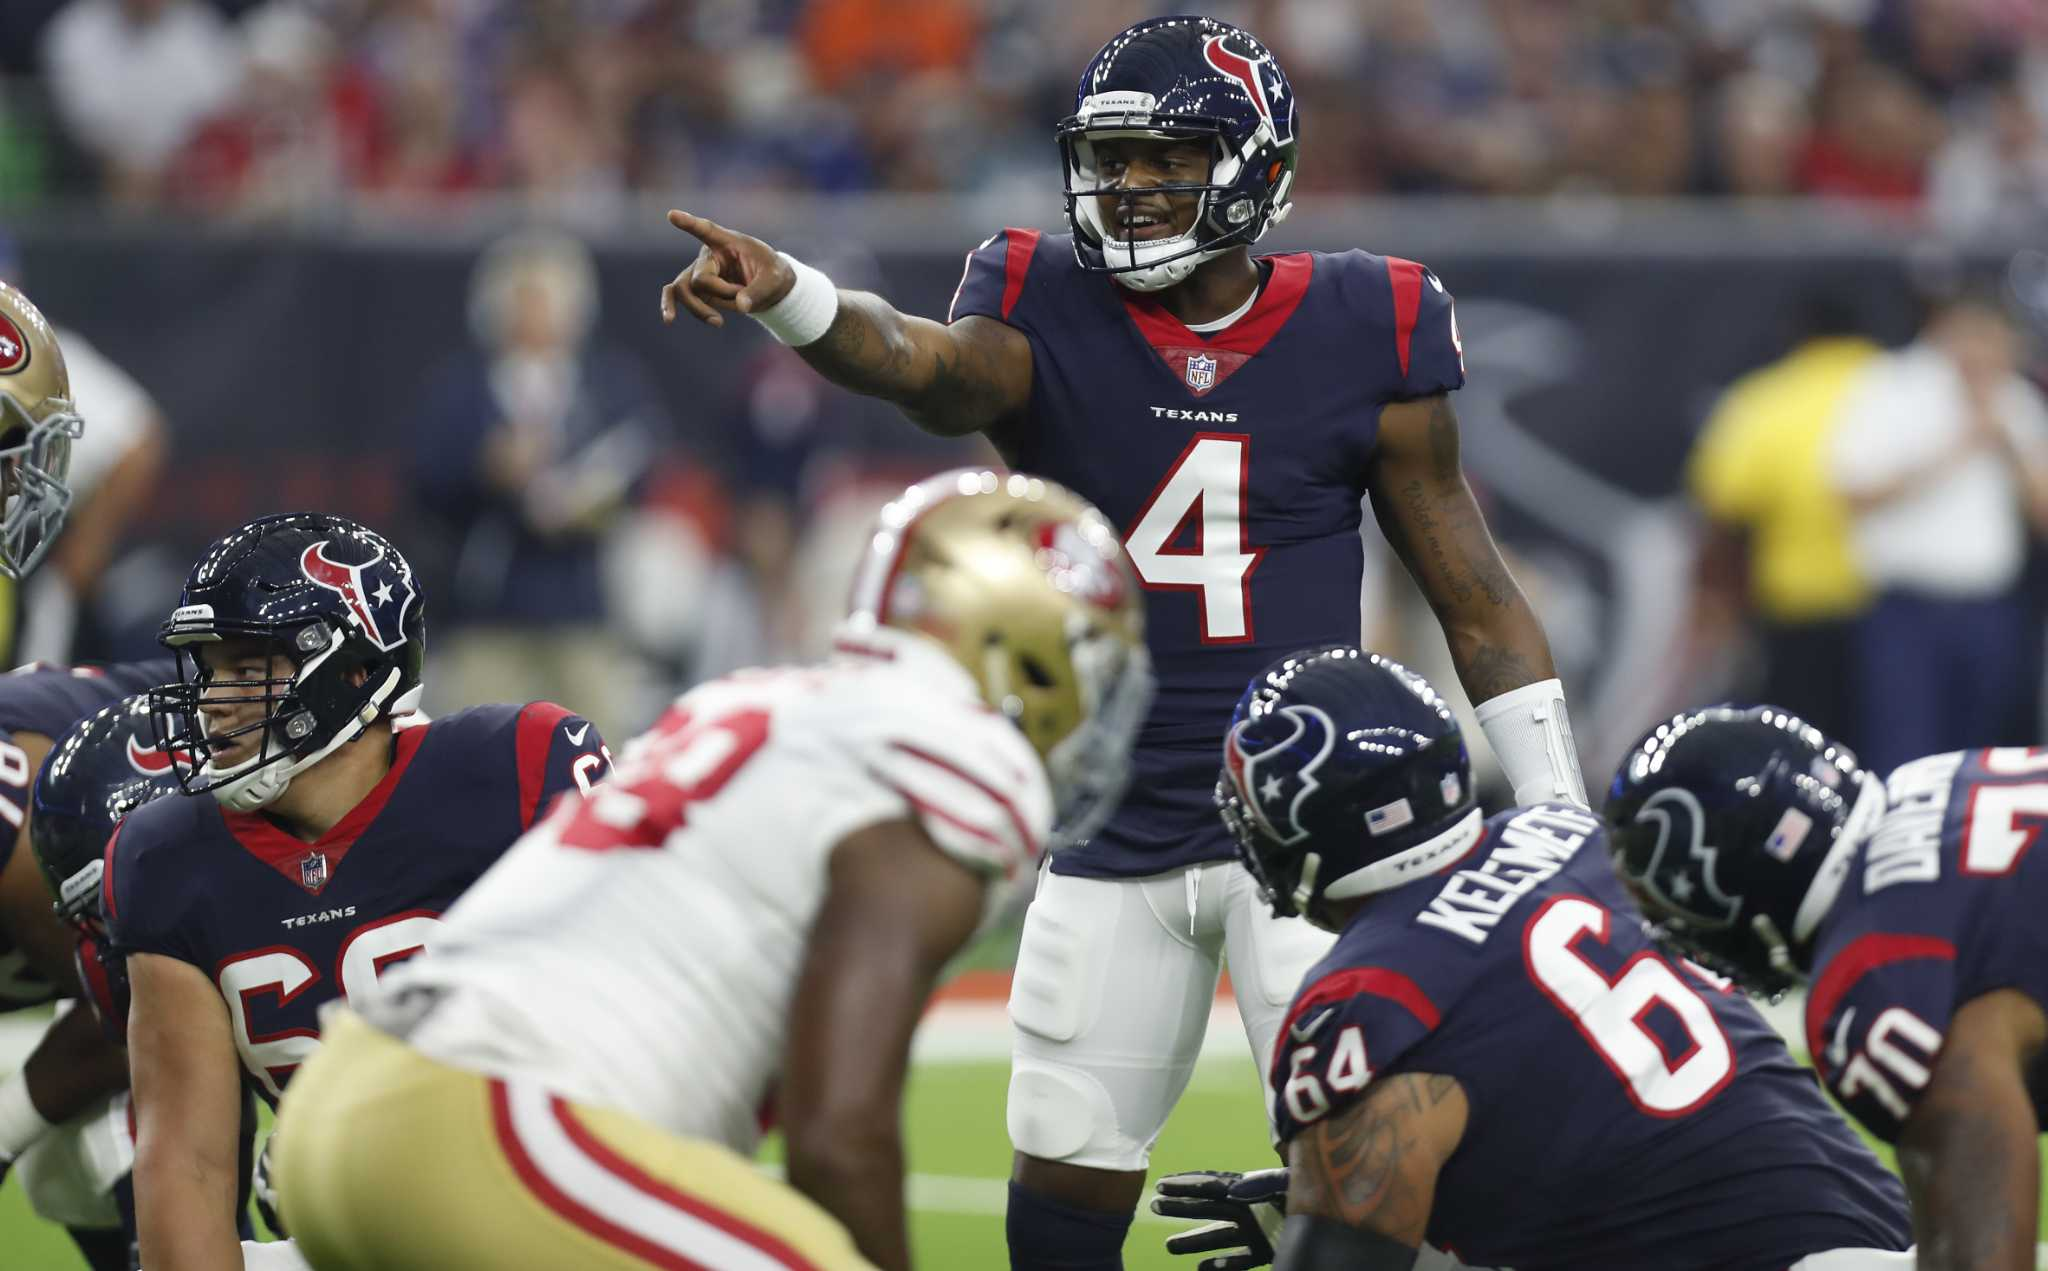 262866288 Deshaun Watson sharp, Texans score late TD vs. 49ers for 2nd preseason win  - Houston Chronicle